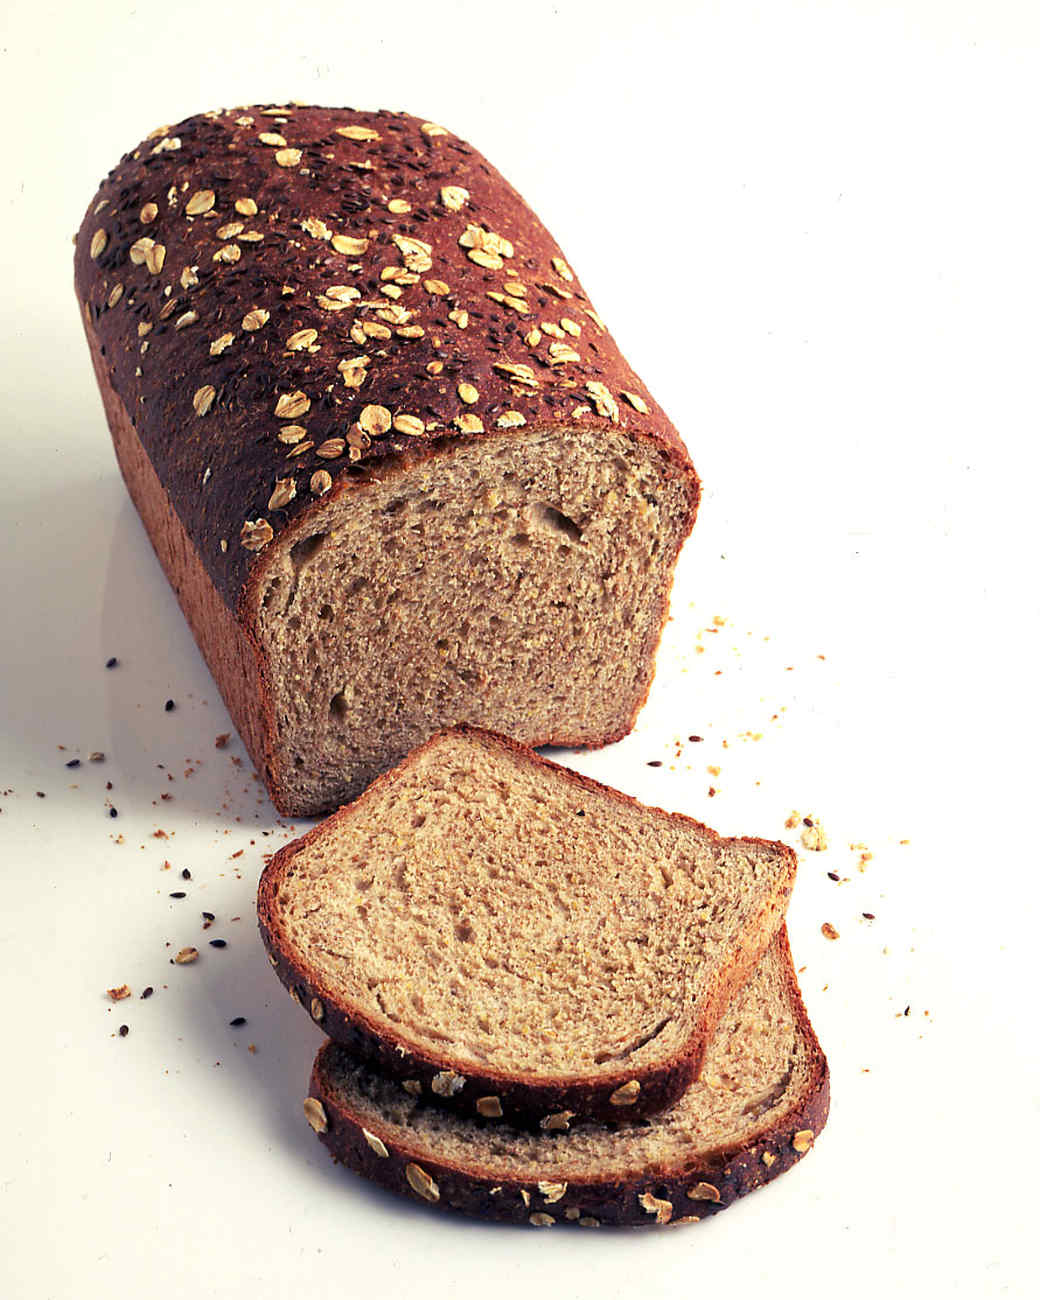 Wholegrain Bread. University Accounting Service. Companies With Management Training Programs. Electronic Medical Records Advantages And Disadvantages. Database Load Testing Tools Volvo S60 Sport. Retiree Medical Insurance Free Online Job Ads. Non Profit Registered Agent Hvac Des Moines. Real Estate Attorney Mn Anti Alcohol Treatment. Auto Insurance Orlando James Hardie Iron Gray